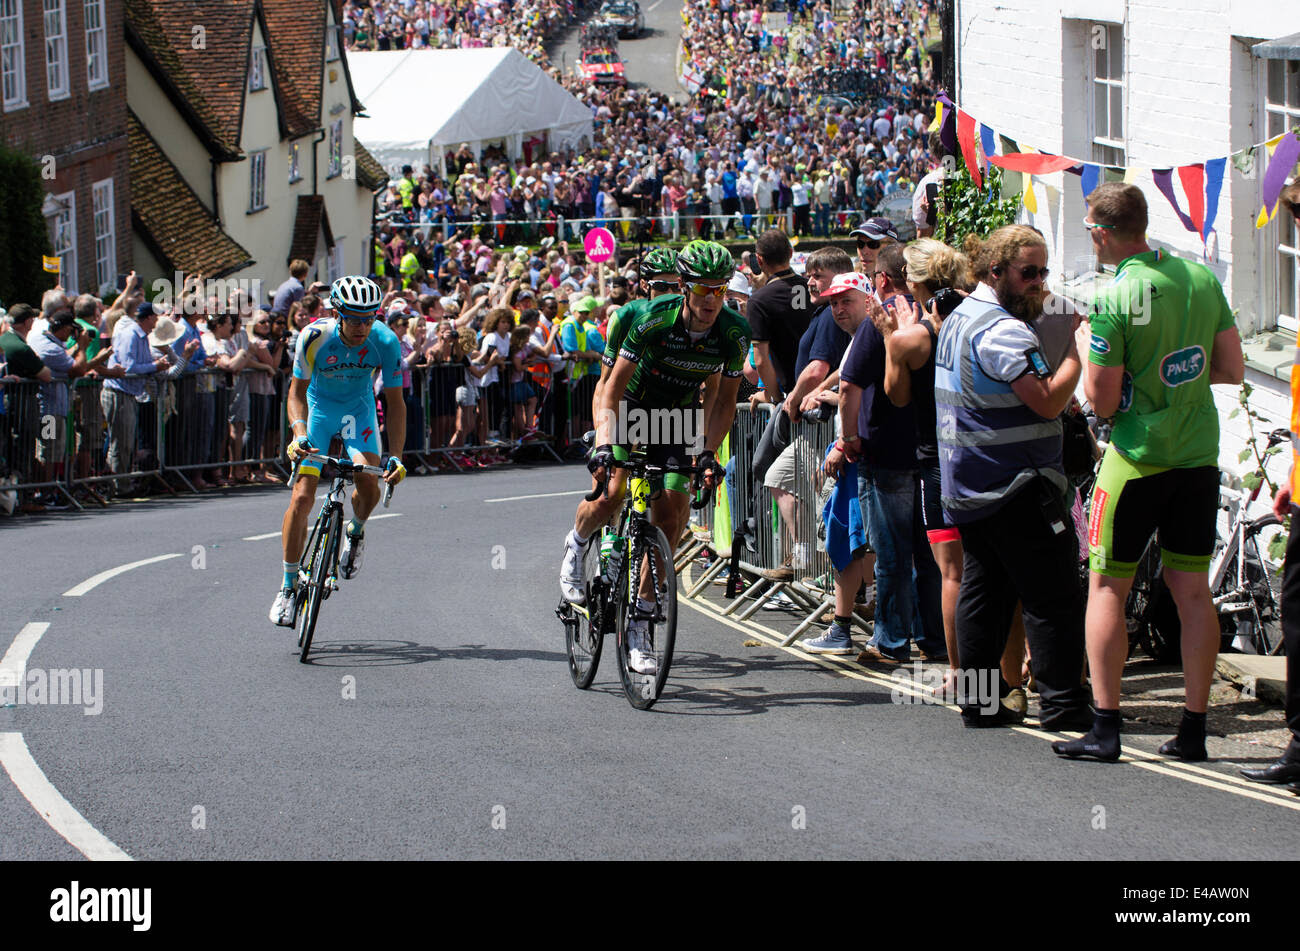 Image result for tour de france cycle race finchingfield pictures